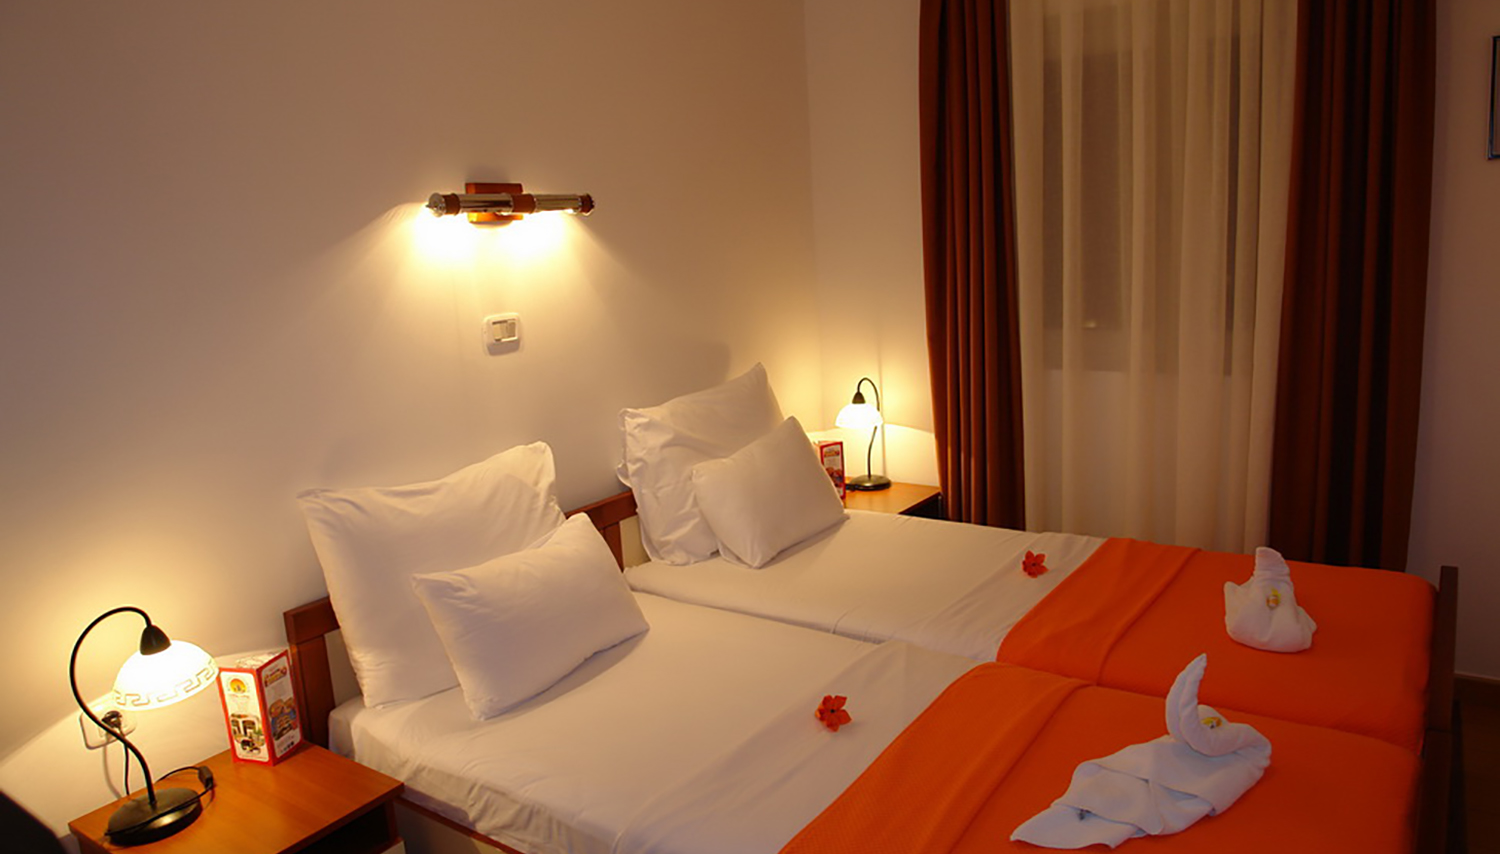 Fineso hotell (Tivat, Montenegro – Horvaatia)